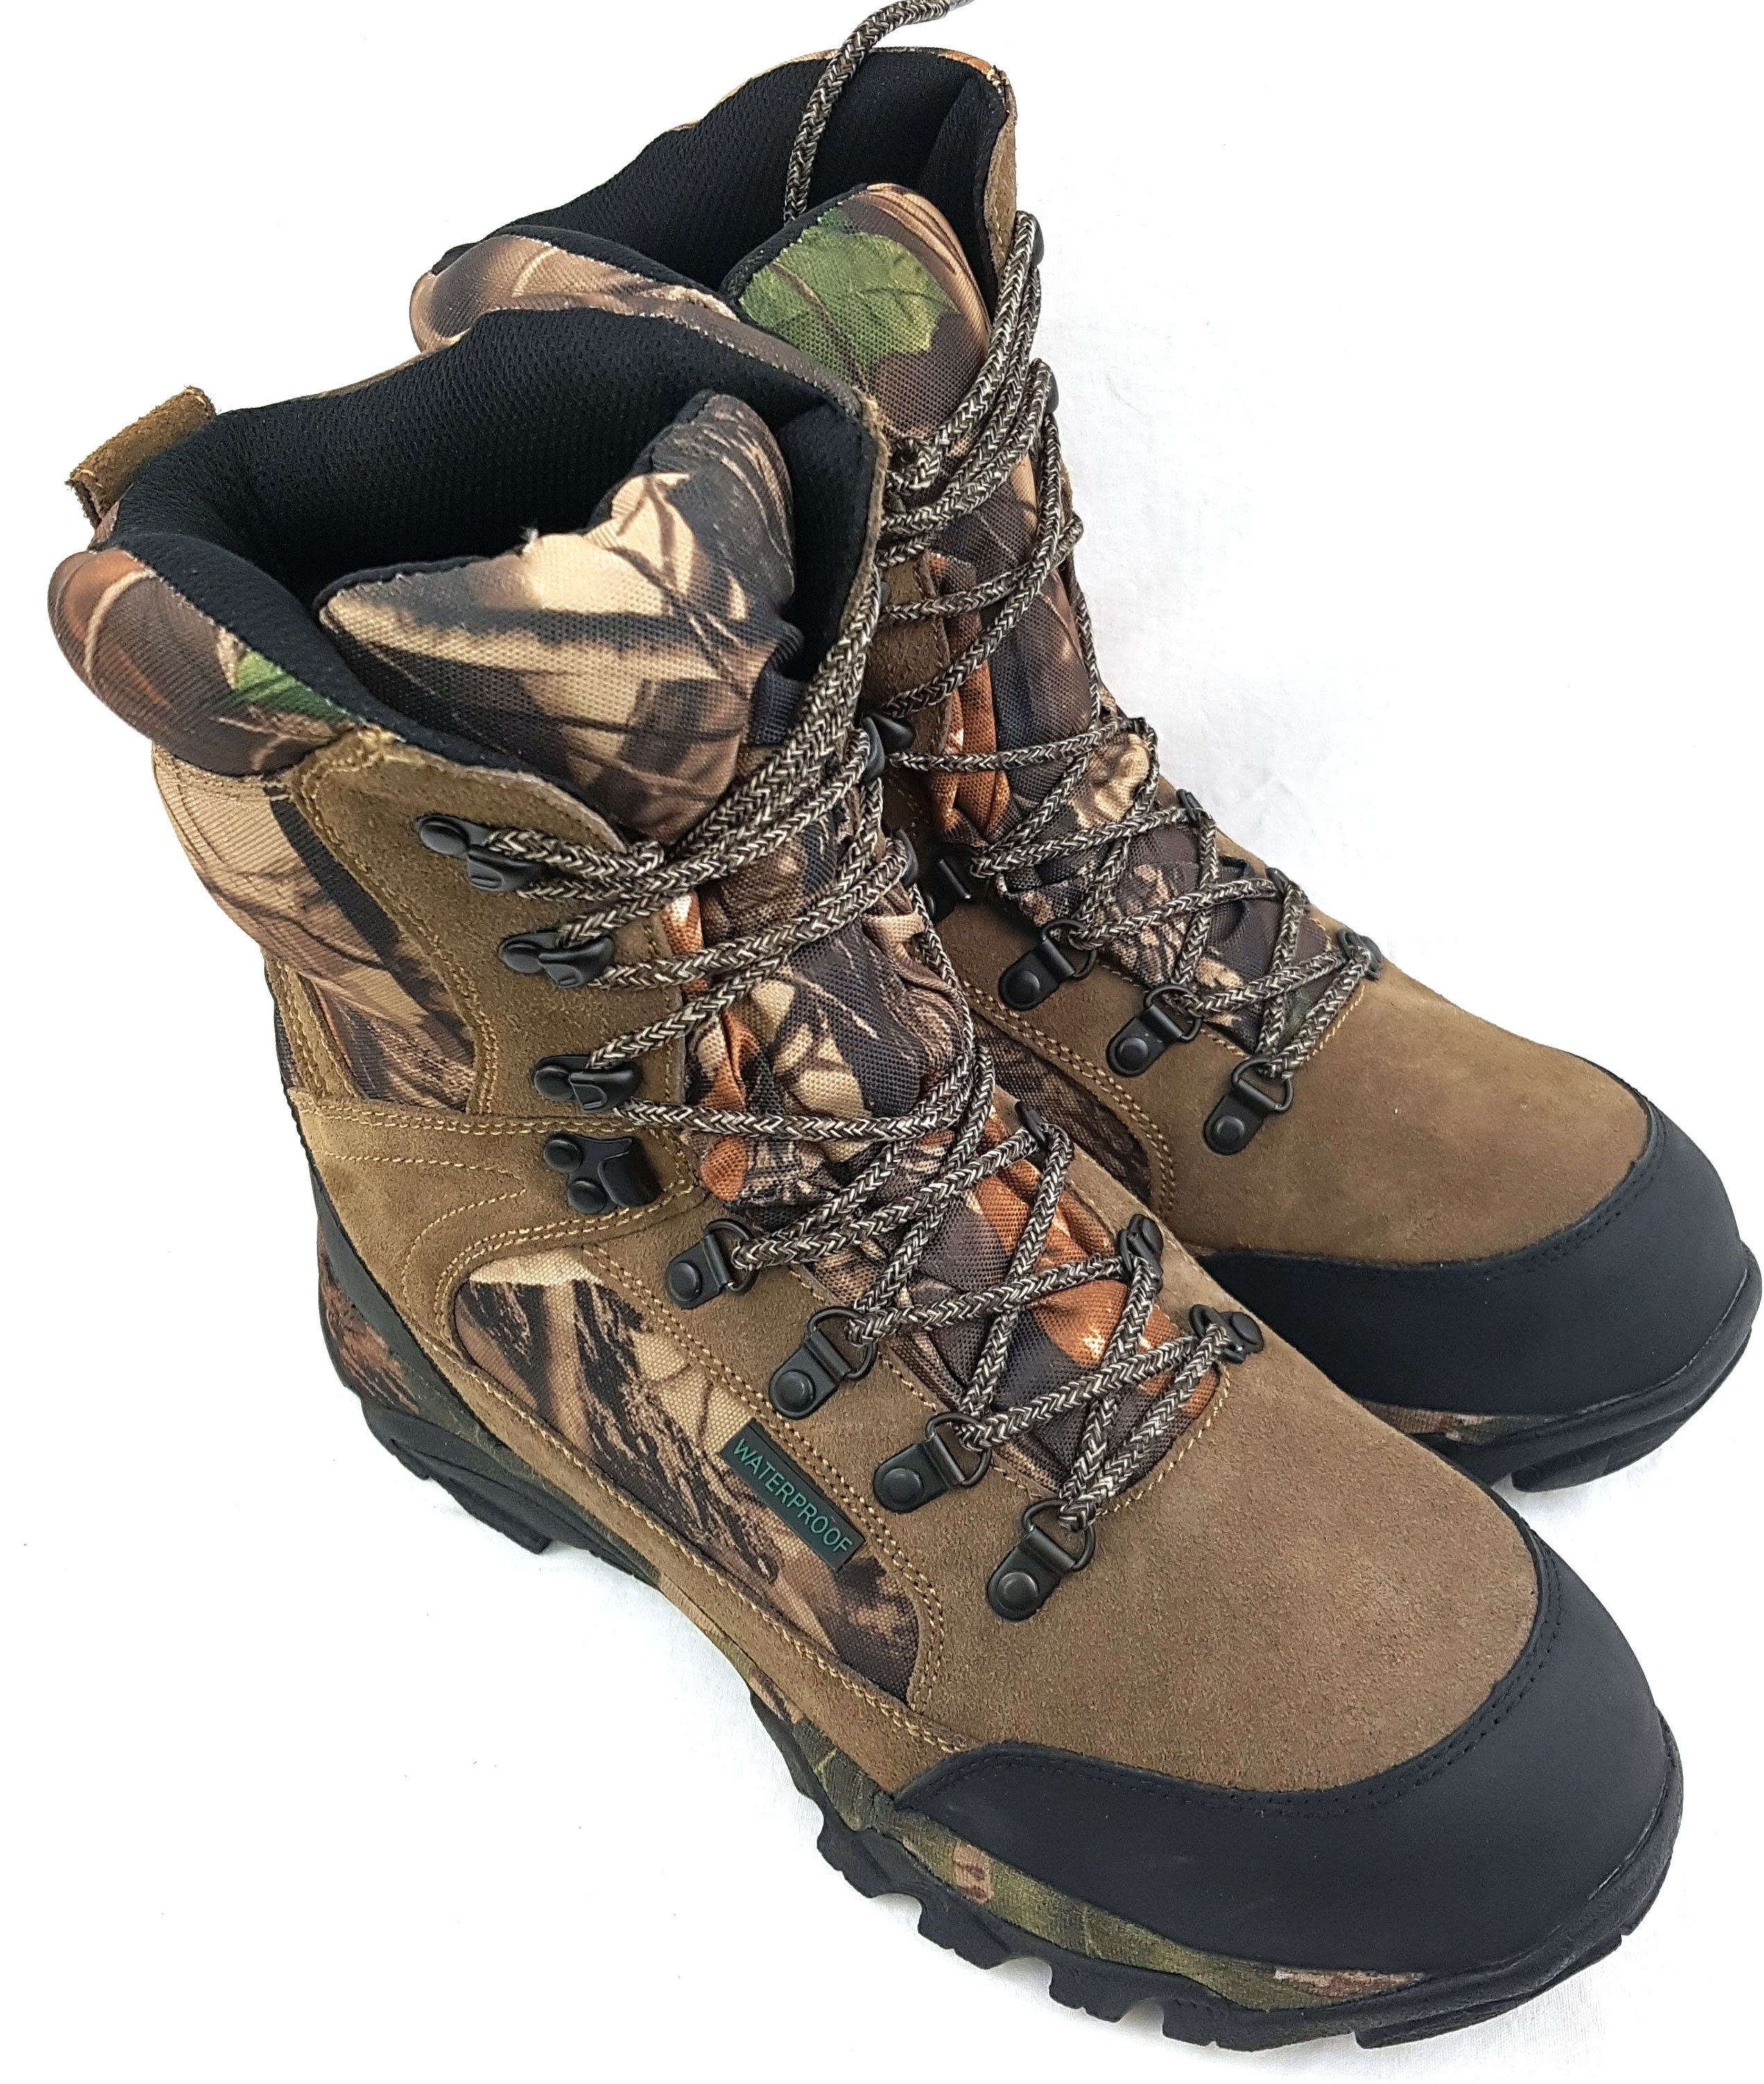 new product 8a161 5bae4 Details about BISON SUEDE LEATHER CAMO WATERPROOF BOOTS